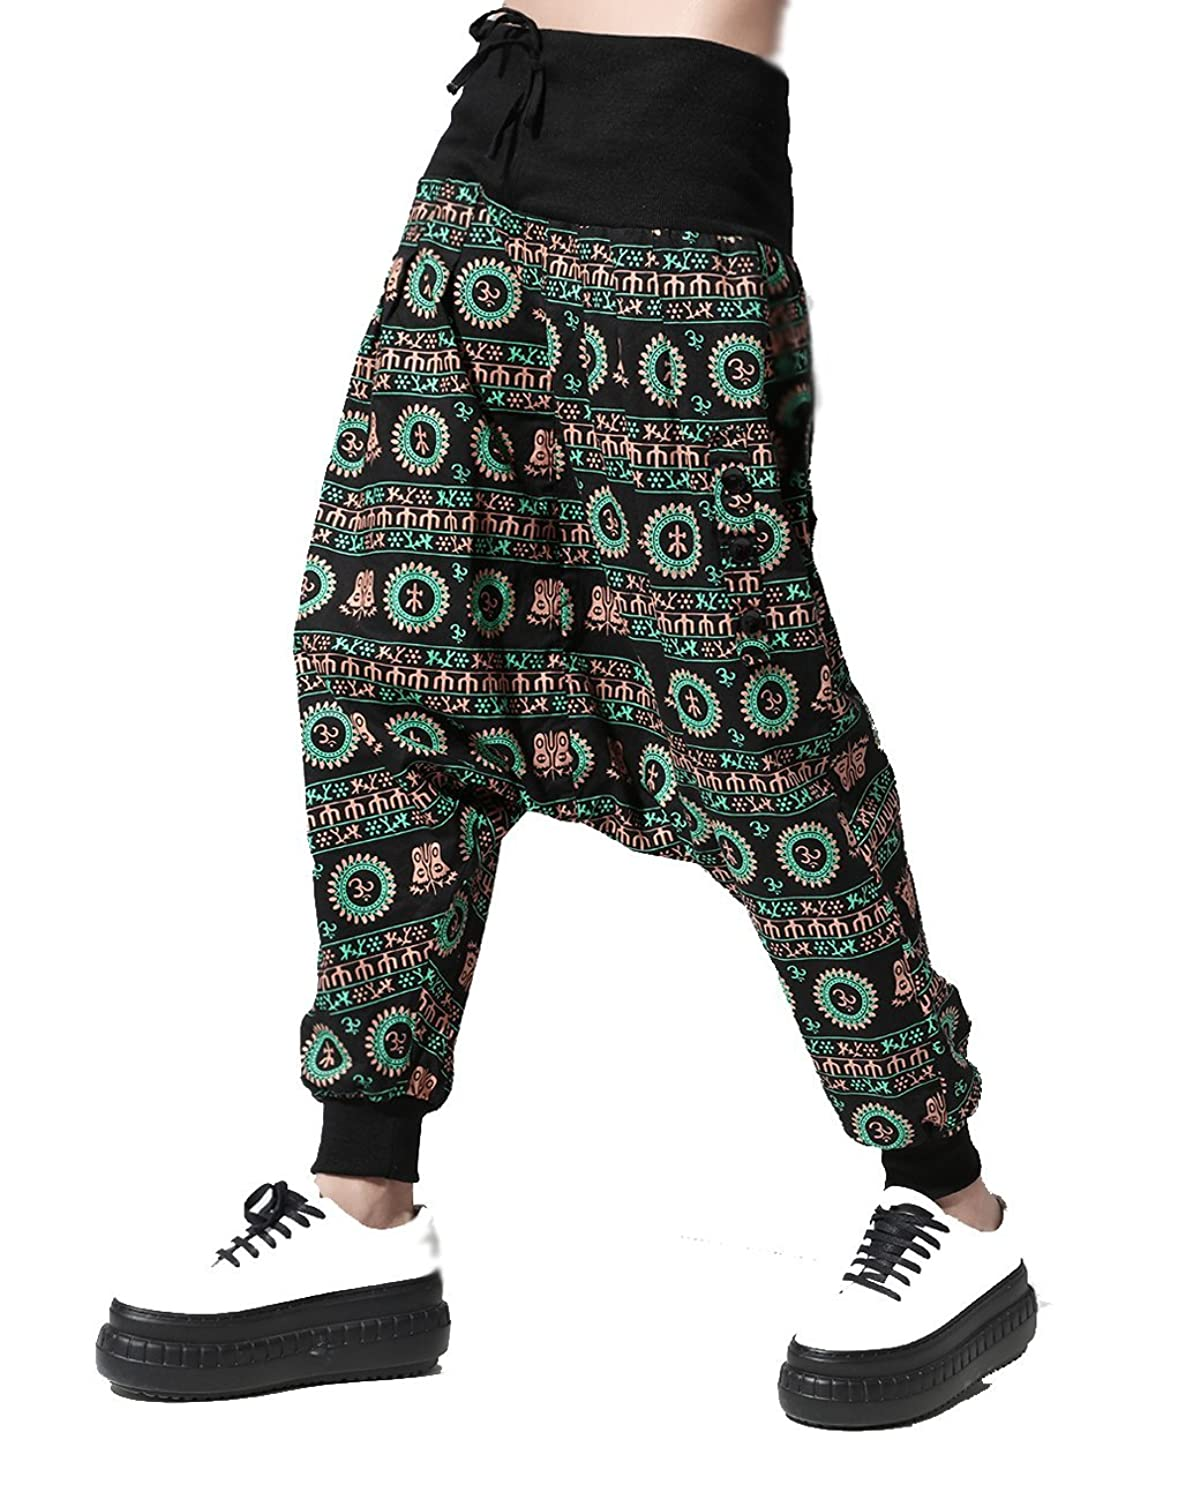 MeMoreCool Women Baggy Harem Pants Low Crotch Pants Spring Summer Hip Hop Pants